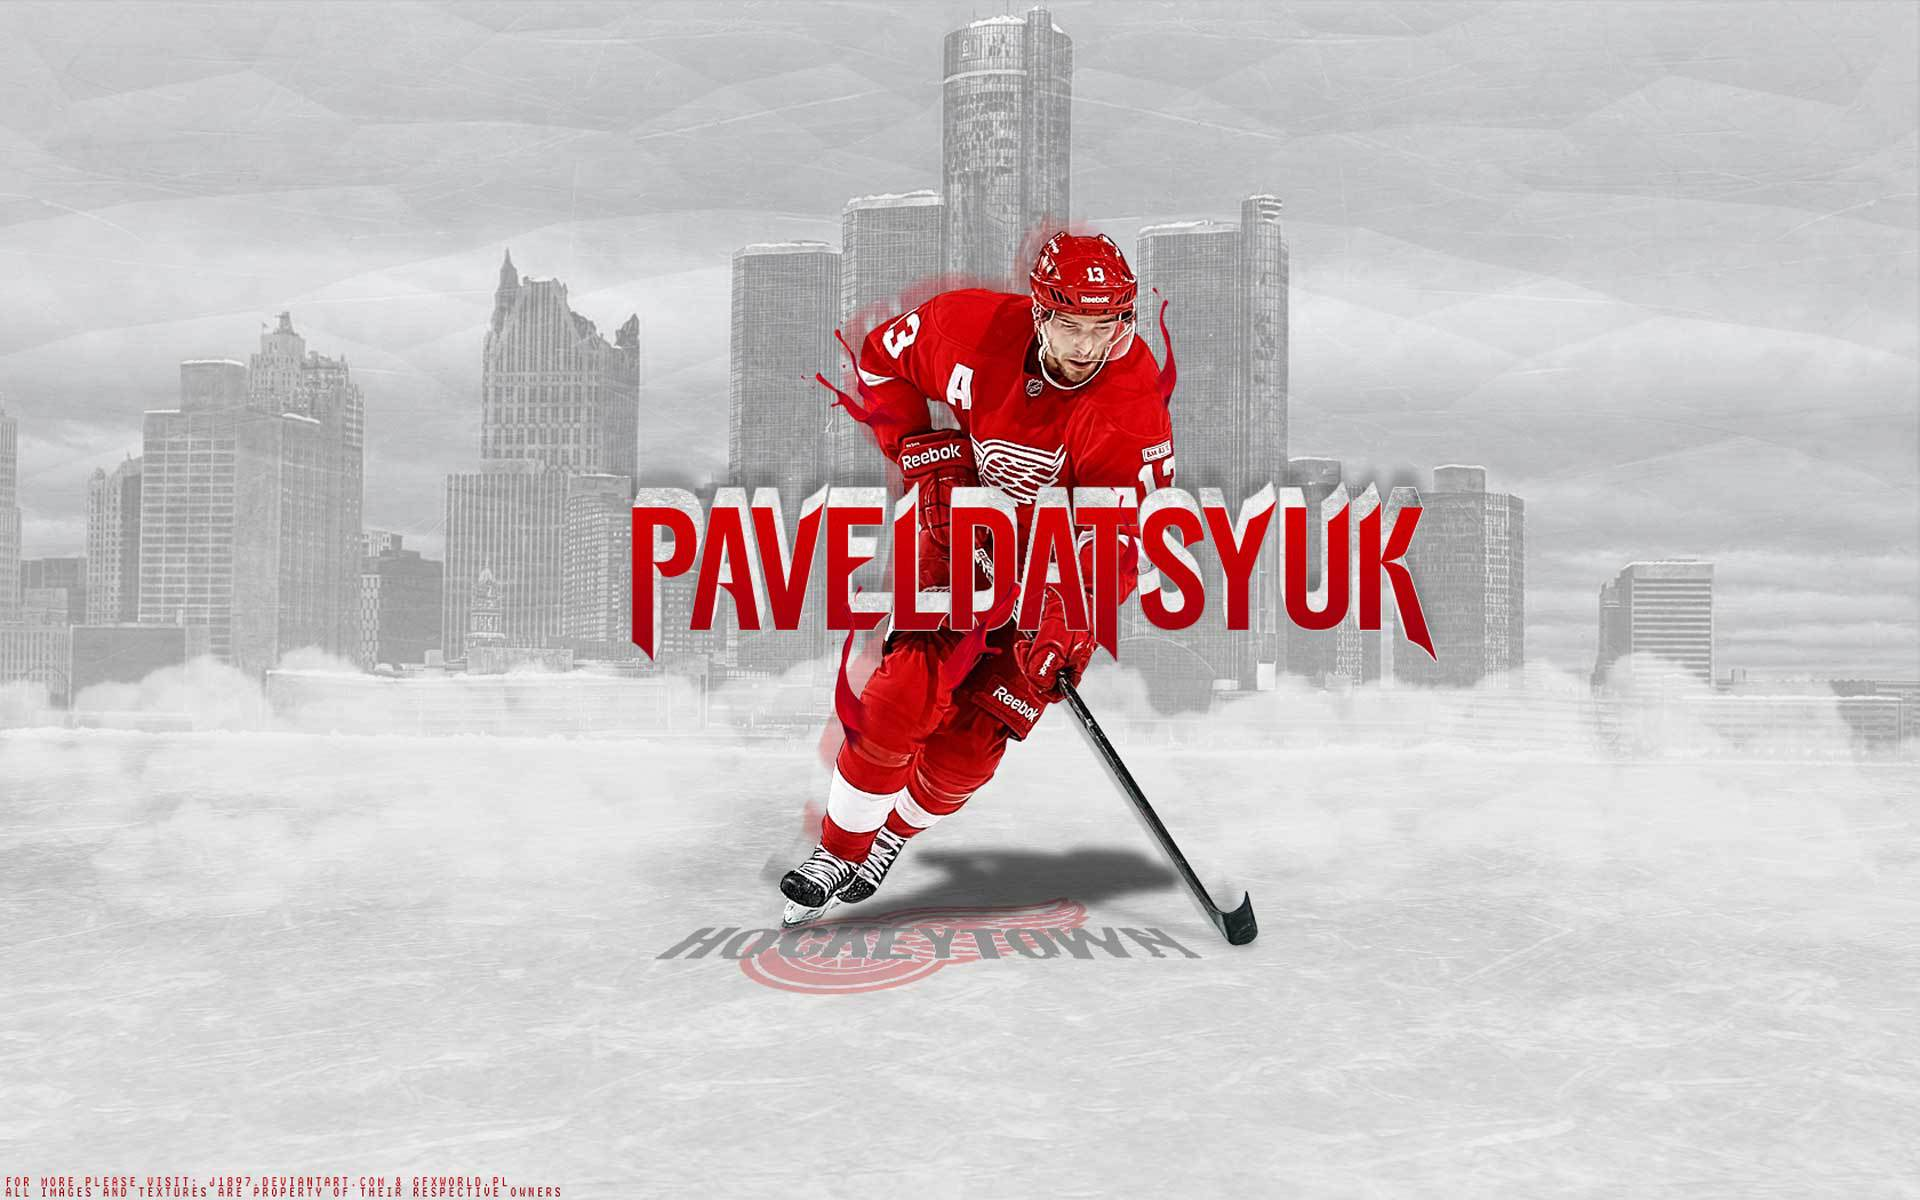 Best Player of Detroit Pavel Datsyuk wallpapers and images 1920x1200